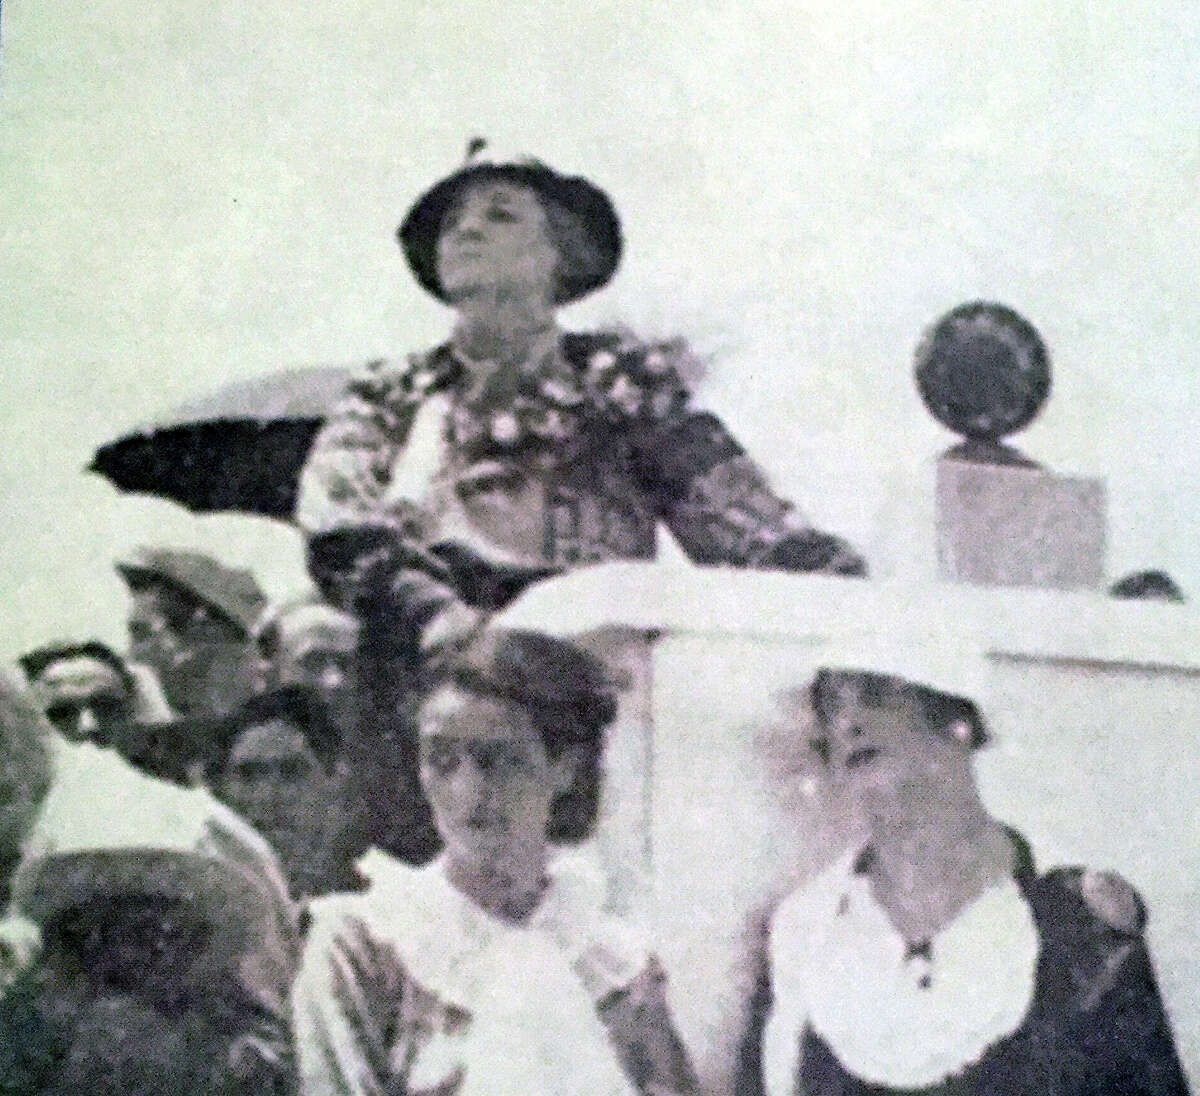 Florence Terry Griswold, founder of the Pan American Round Table, a women's club that promoted study and understanding of Latin American nations.